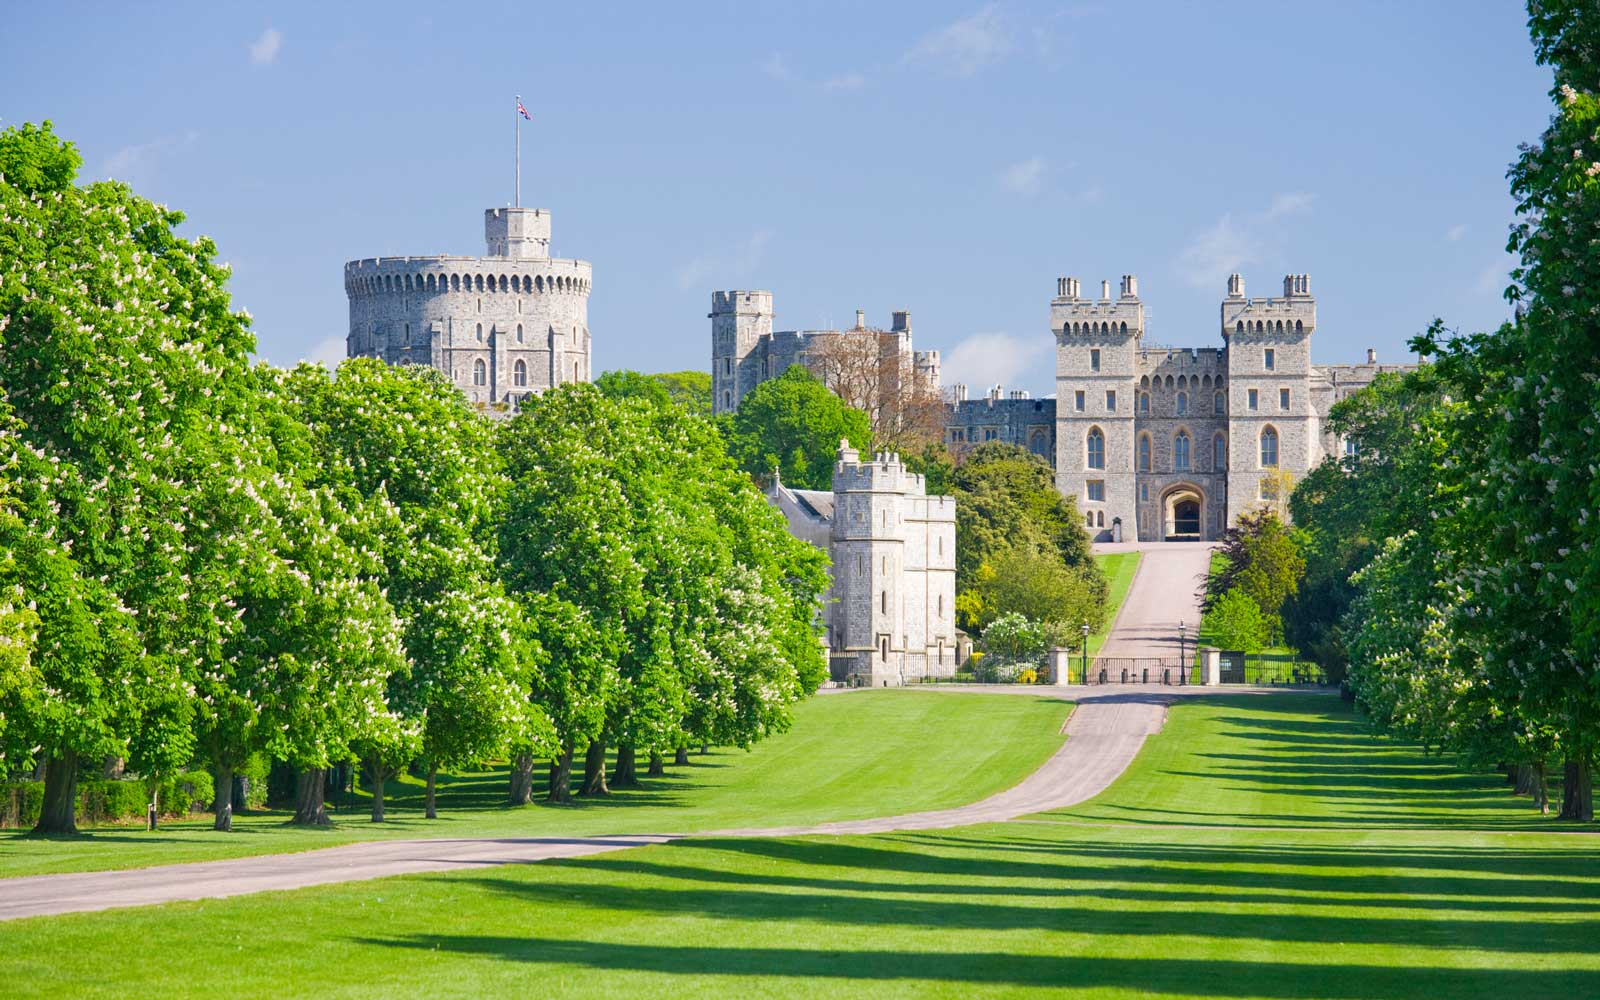 Windsor Castle in Berkshire, England